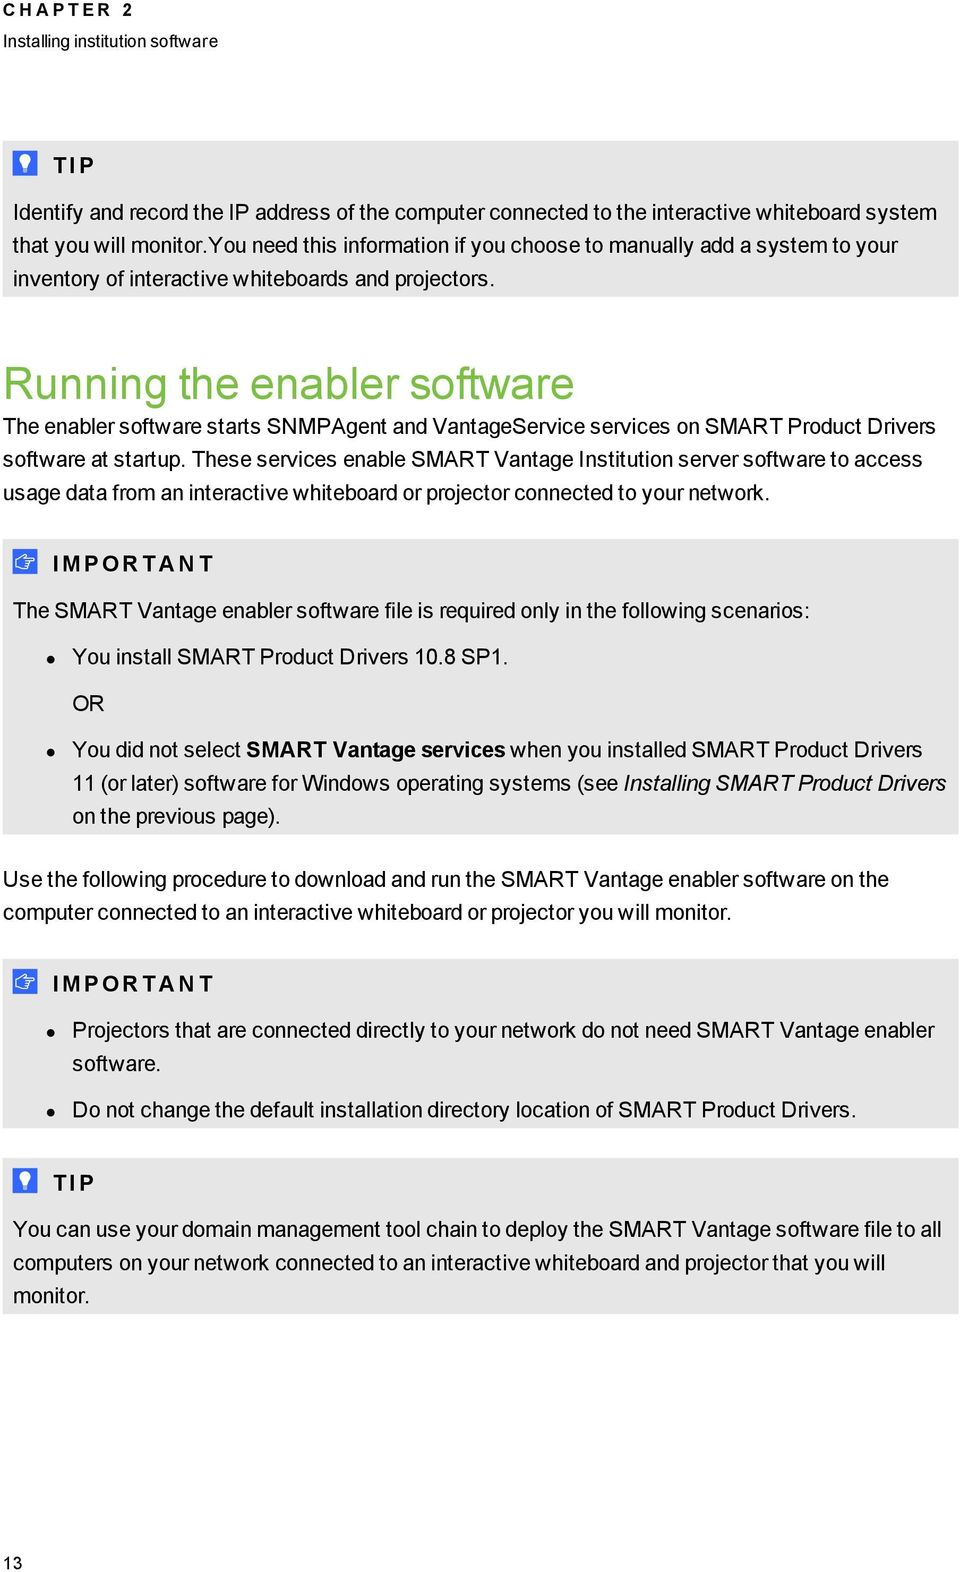 Running the enabler software The enabler software starts SNMPAgent and VantageService services on SMART Product Drivers software at startup.